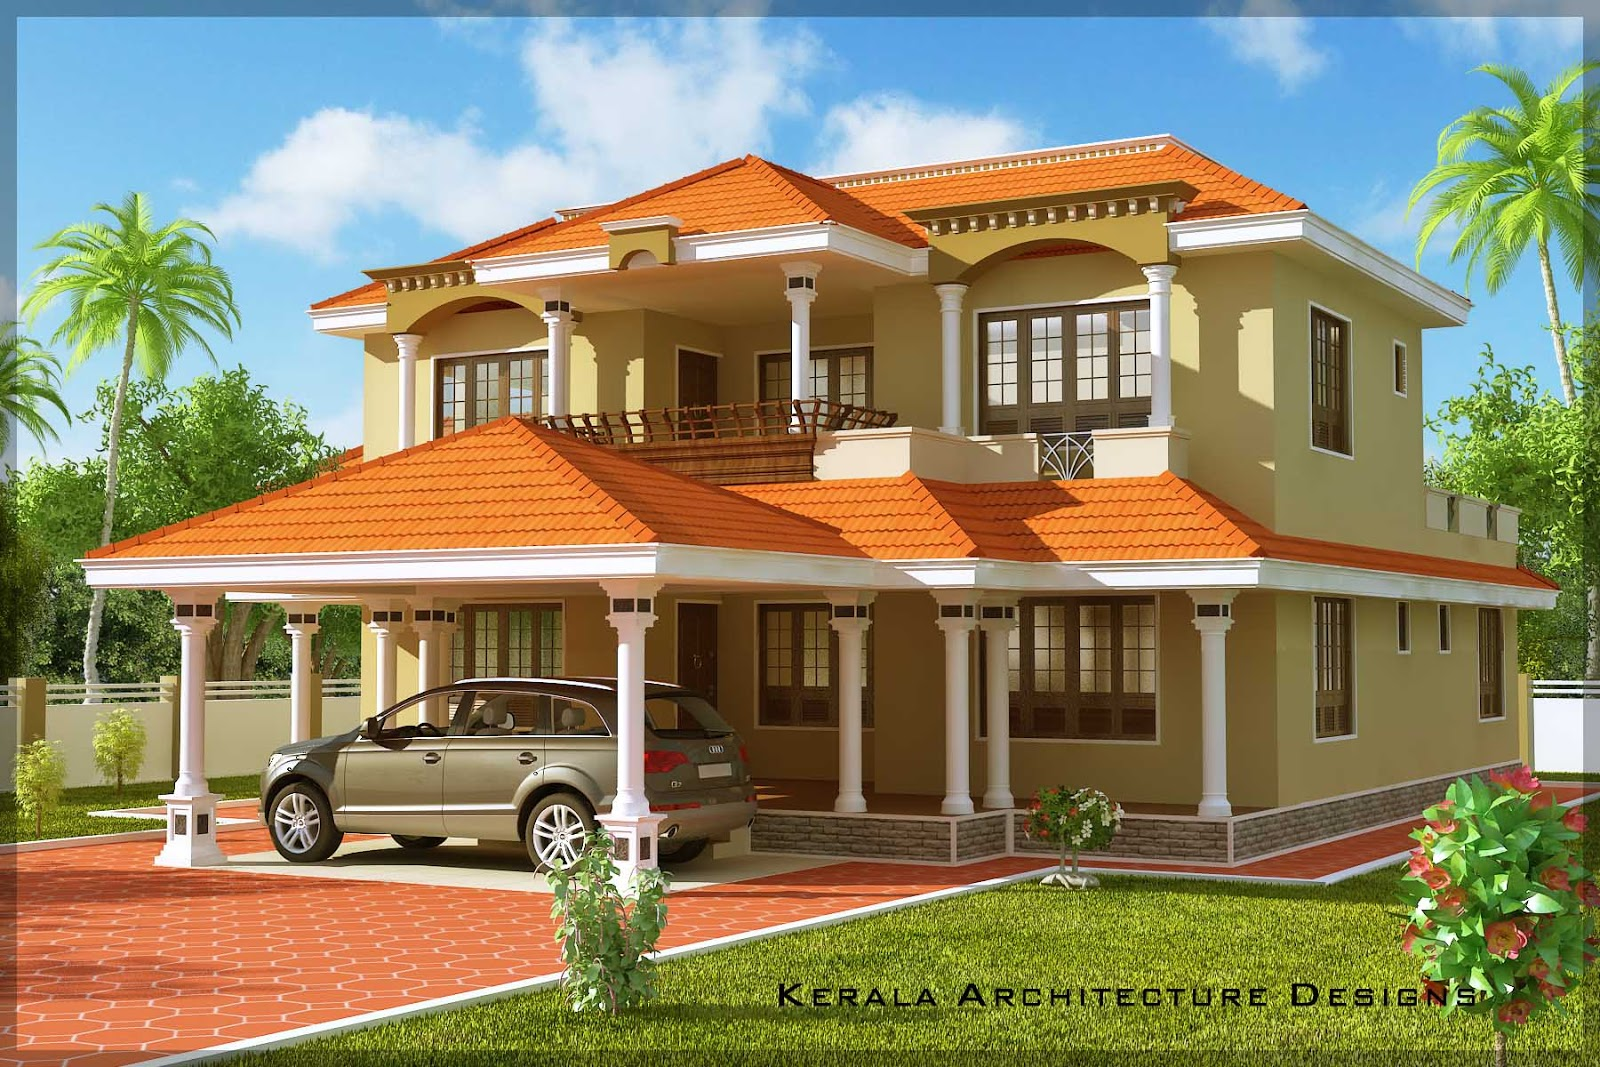 Beautiful traditional kerala house plan architecture kerala for Traditional house plans kerala style